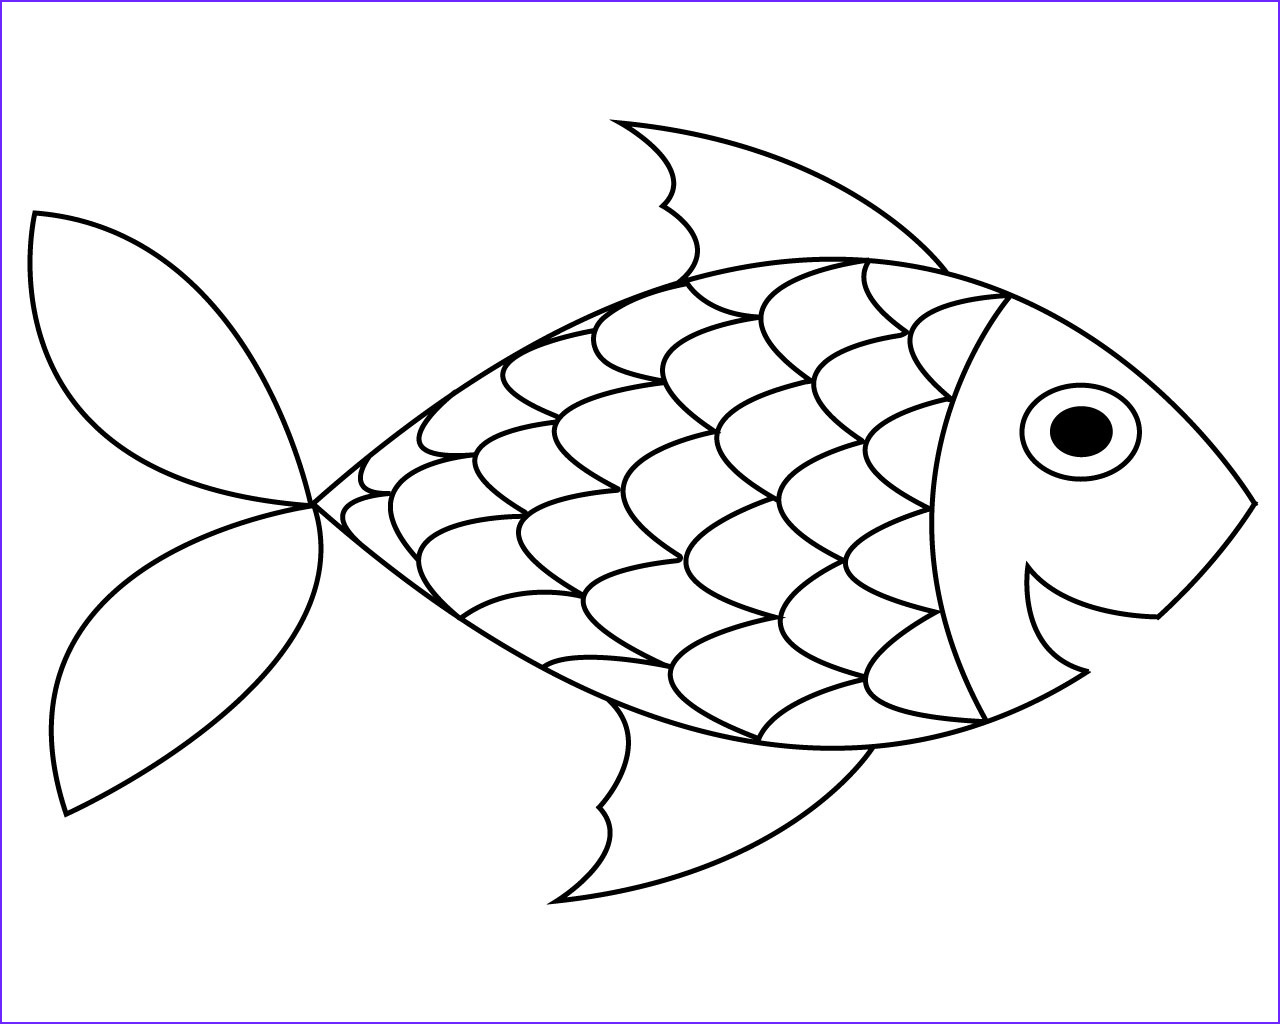 Free Printable Fish Coloring Pages Cool Stock Free Printable Fish Coloring Pages for Your Lovely toddlers